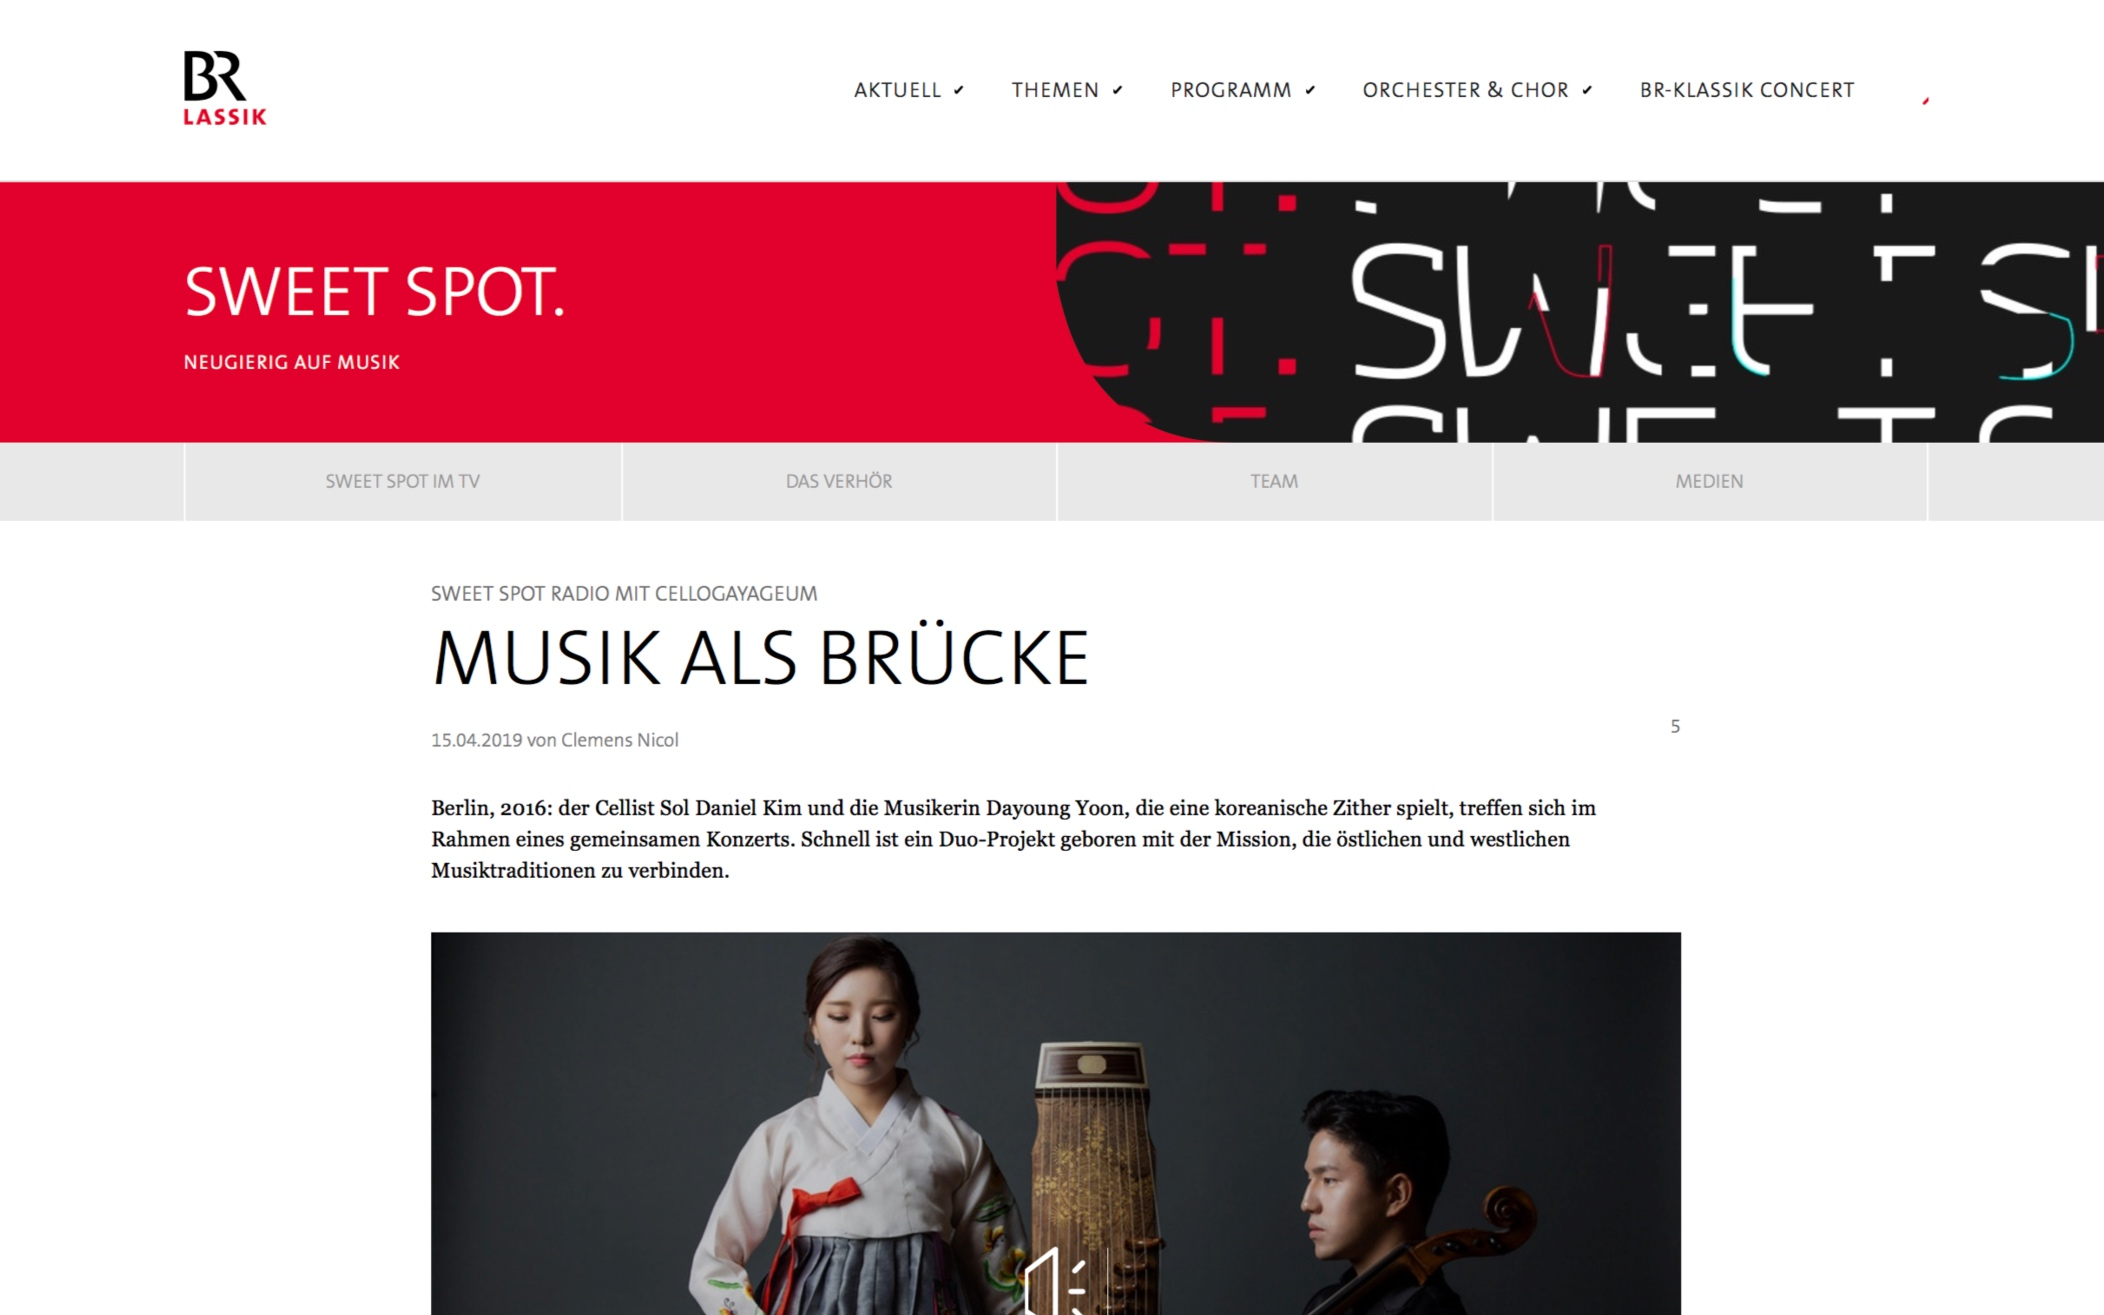 Online Article & Podcast [German]   A live interview and performance at <Sweet Spot> of the Bavarian Broadcasting station - Bayerischer Rundfunk BR.  by Clemens Nicol - 15.04.2019